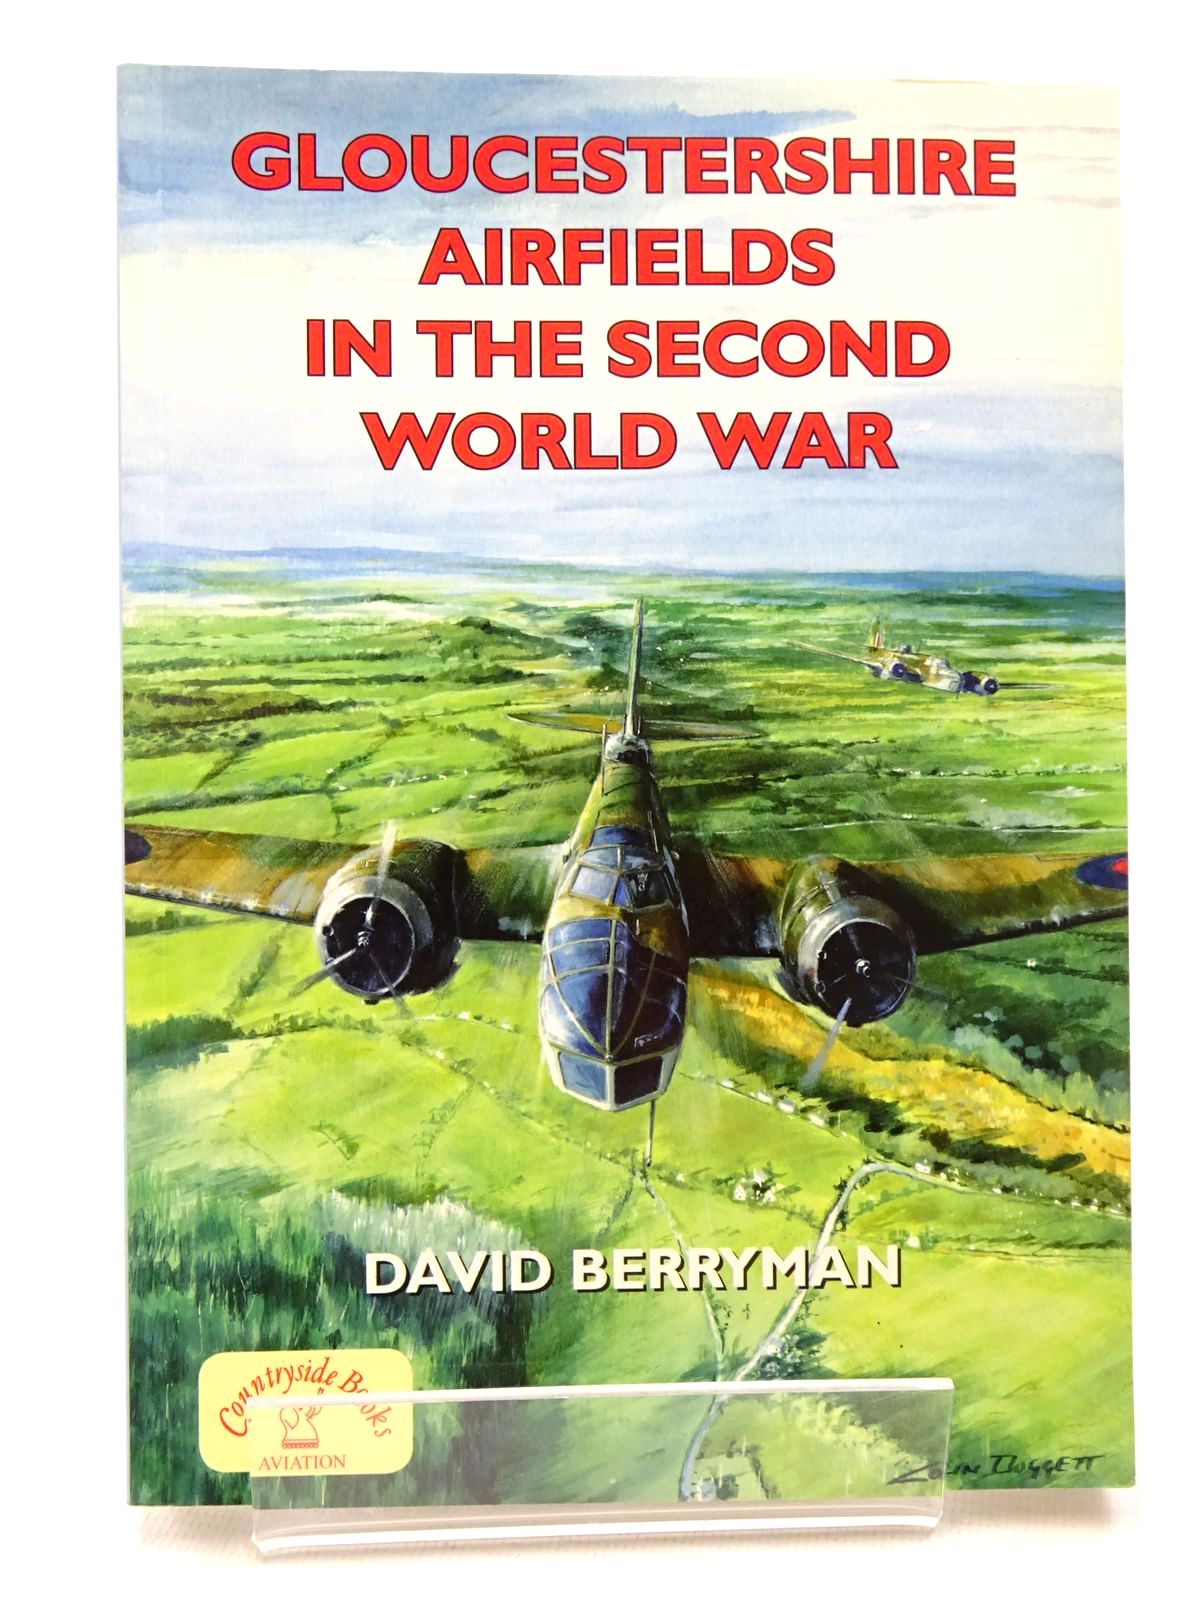 Photo of GLOUCESTERSHIRE AIRFIELDS IN THE SECOND WORLD WAR written by Berryman, David published by Countryside Books (STOCK CODE: 1610180)  for sale by Stella & Rose's Books